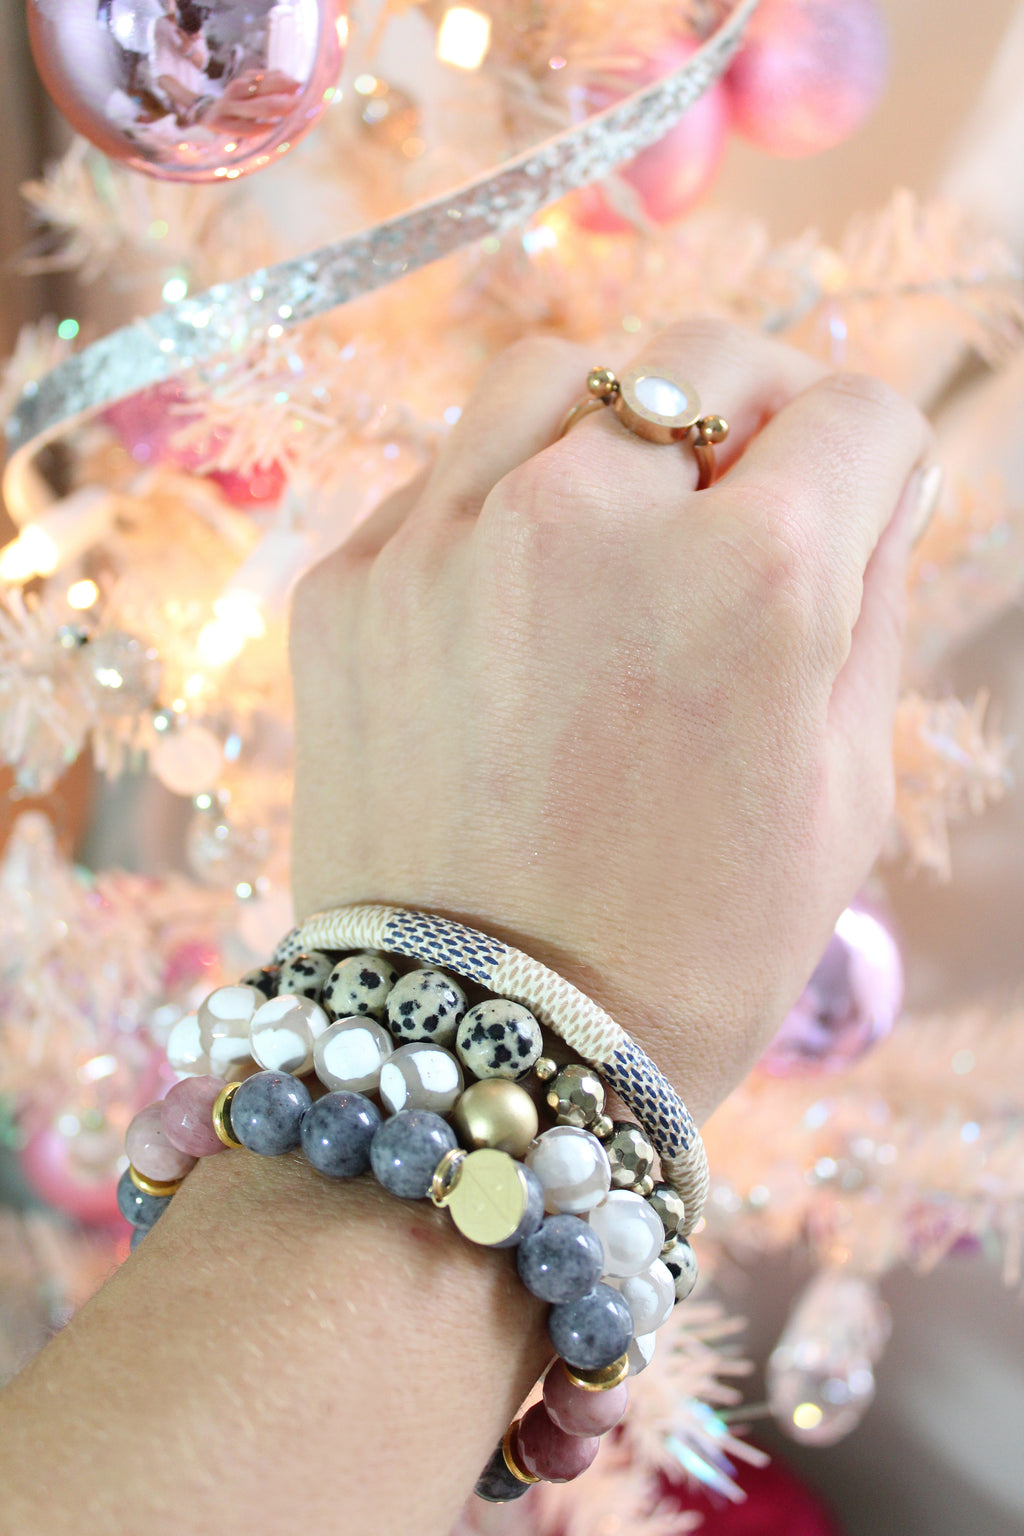 Handmade Jewelry, Trendy Gemstone Bracelet Stack - Find Cute Handmade Bracelets Online Now At Kendry Collection Boutique